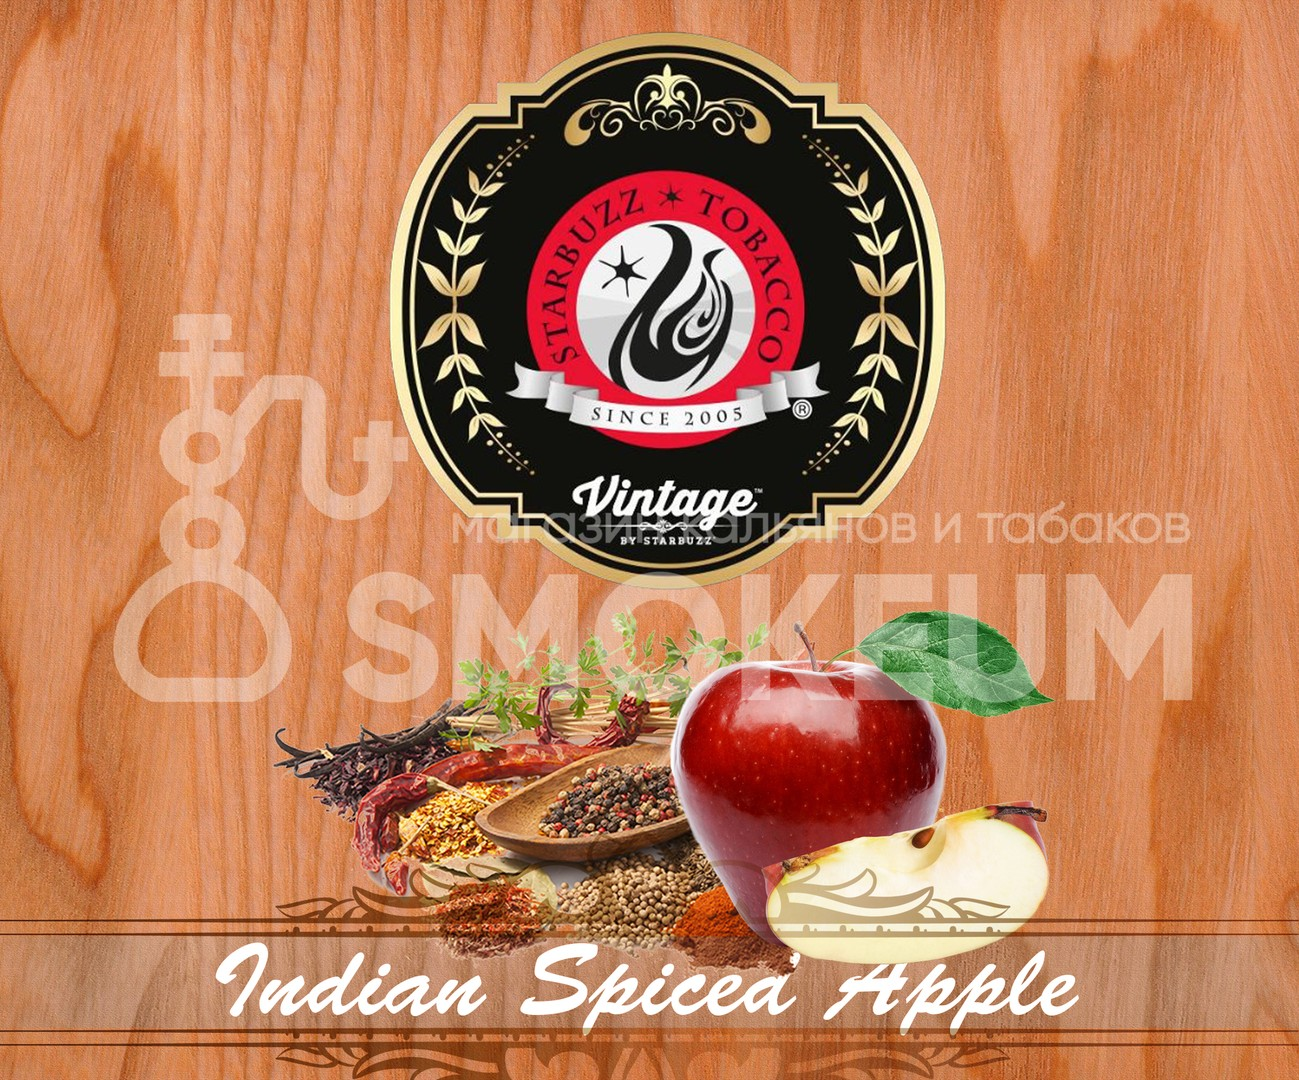 Табак Starbuzz - Vintage Indian Spiced Apple (Яблоко с индийскими специями) 200 гр